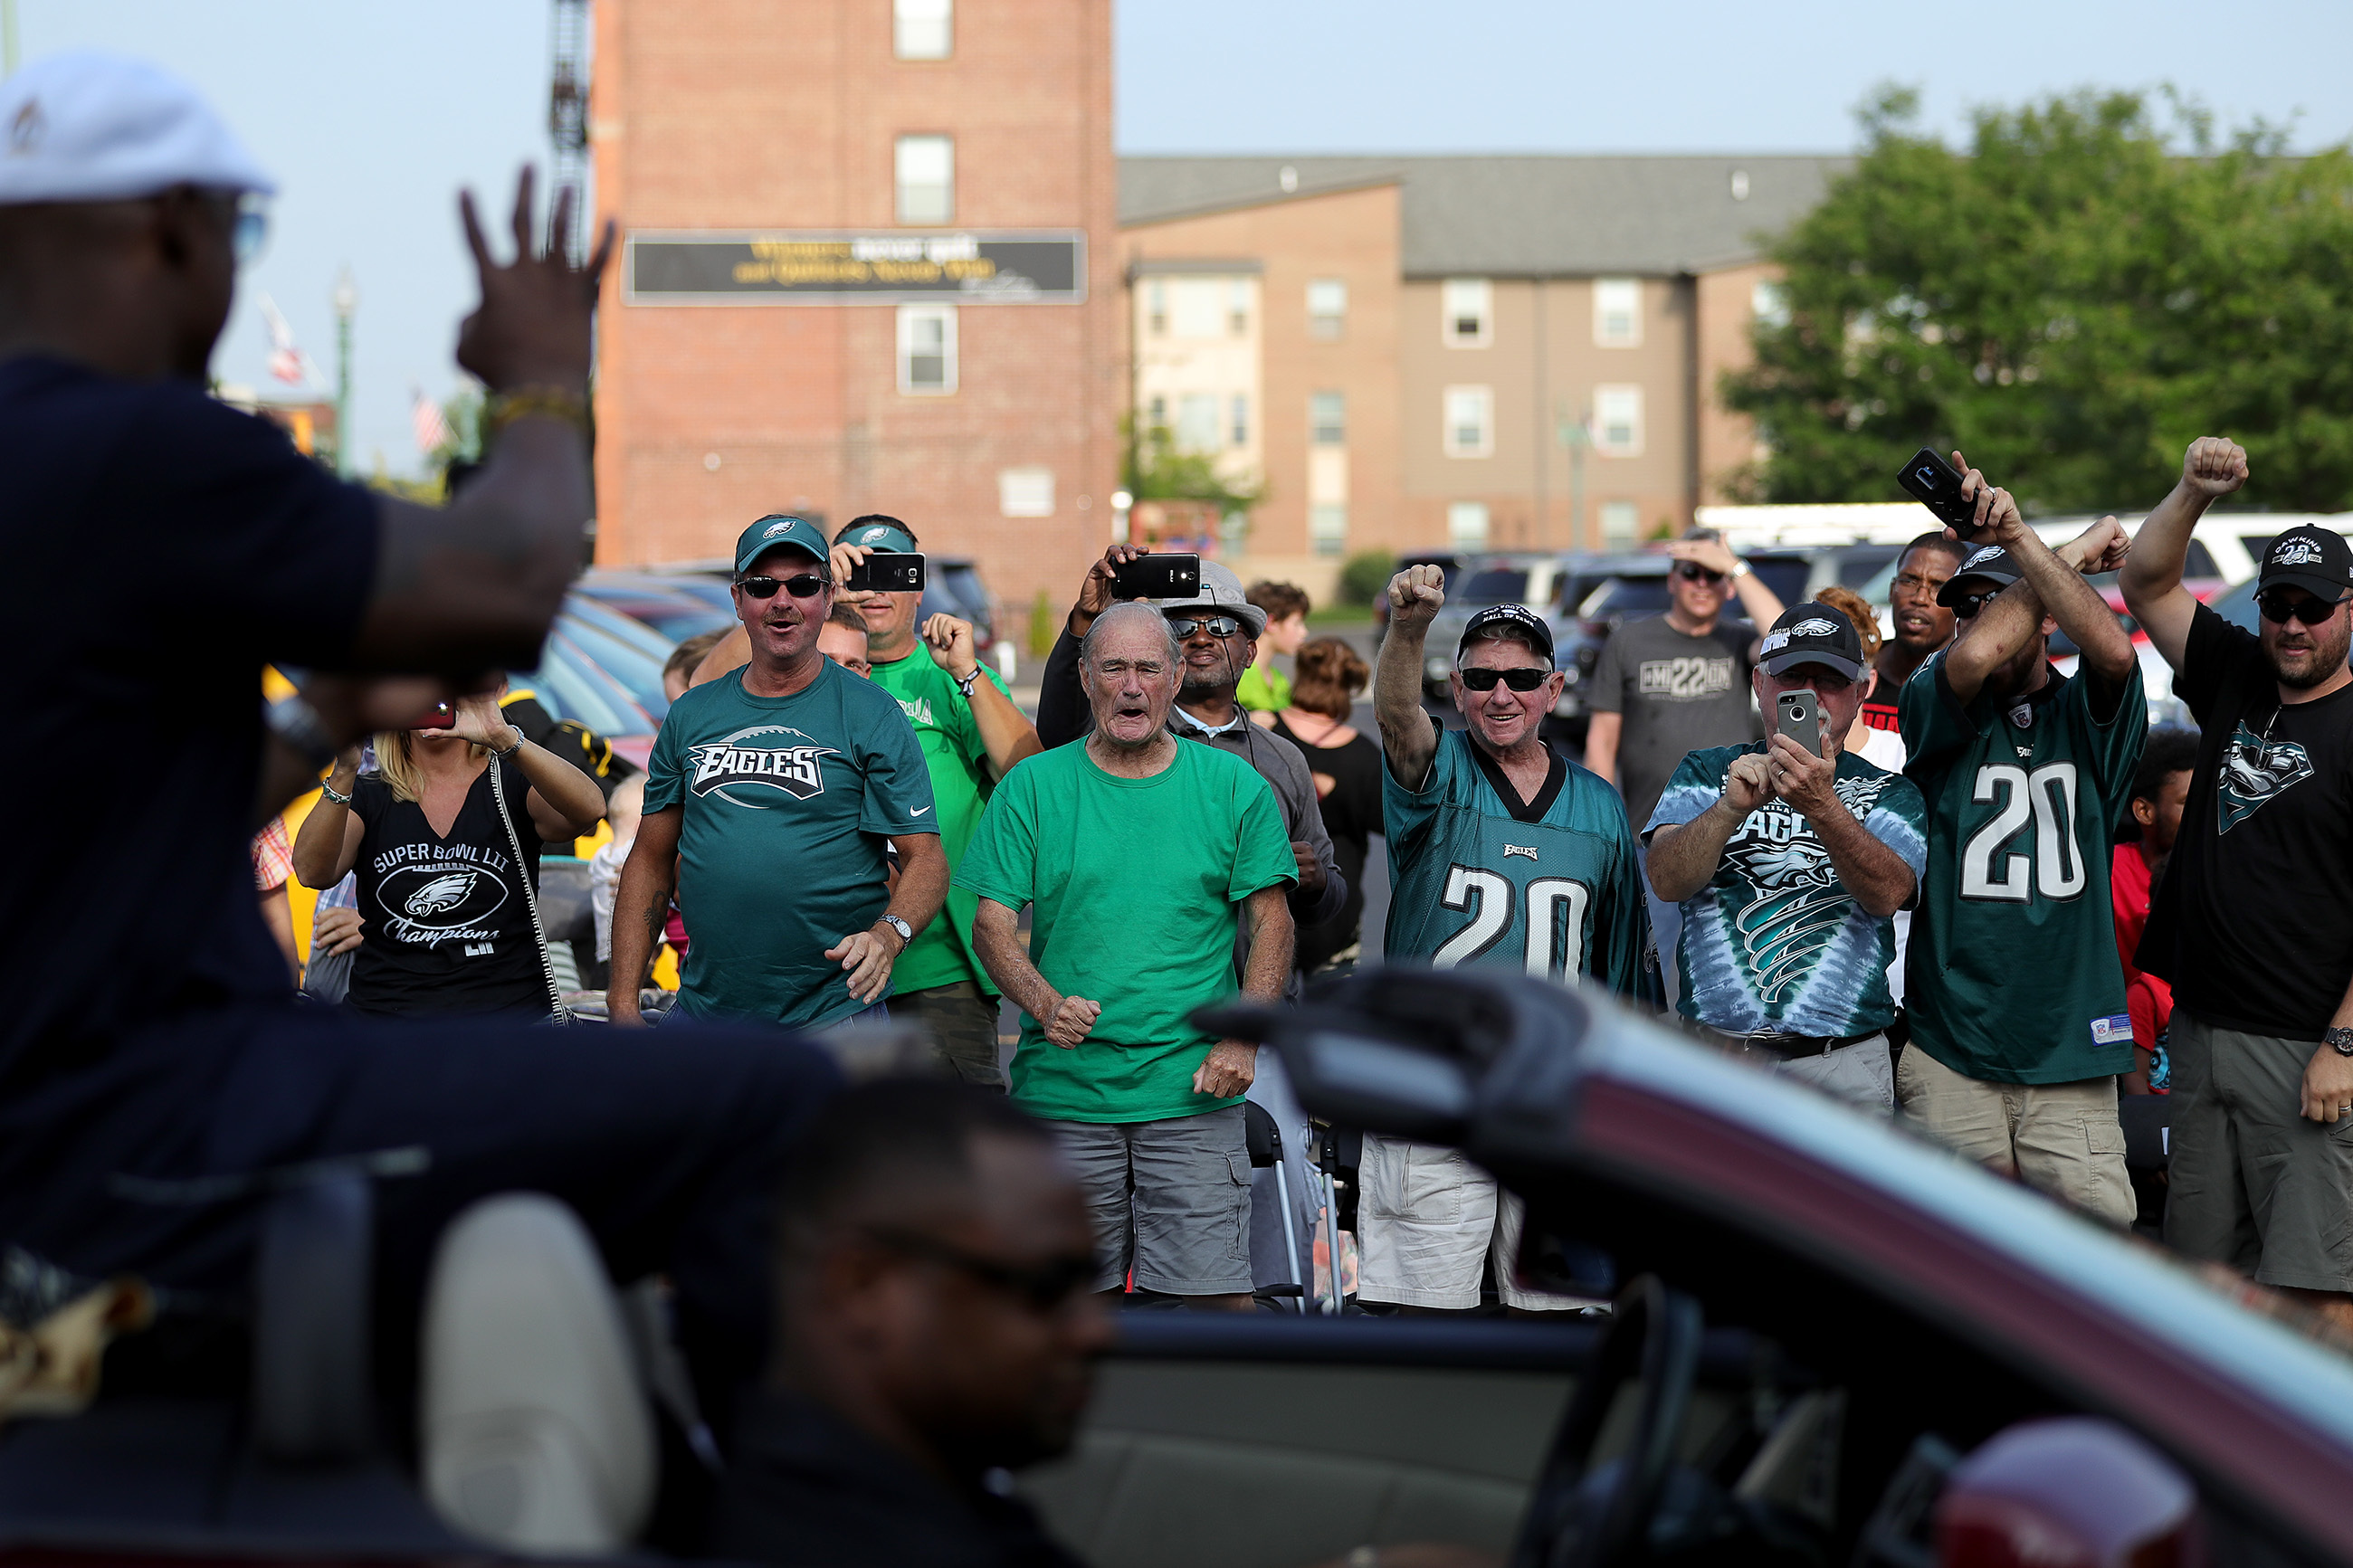 Eagles fans celebrate Brian Dawkins as he parades through Canton, Ohio, ahead of his Hall of Fame enshrinement ceremony.